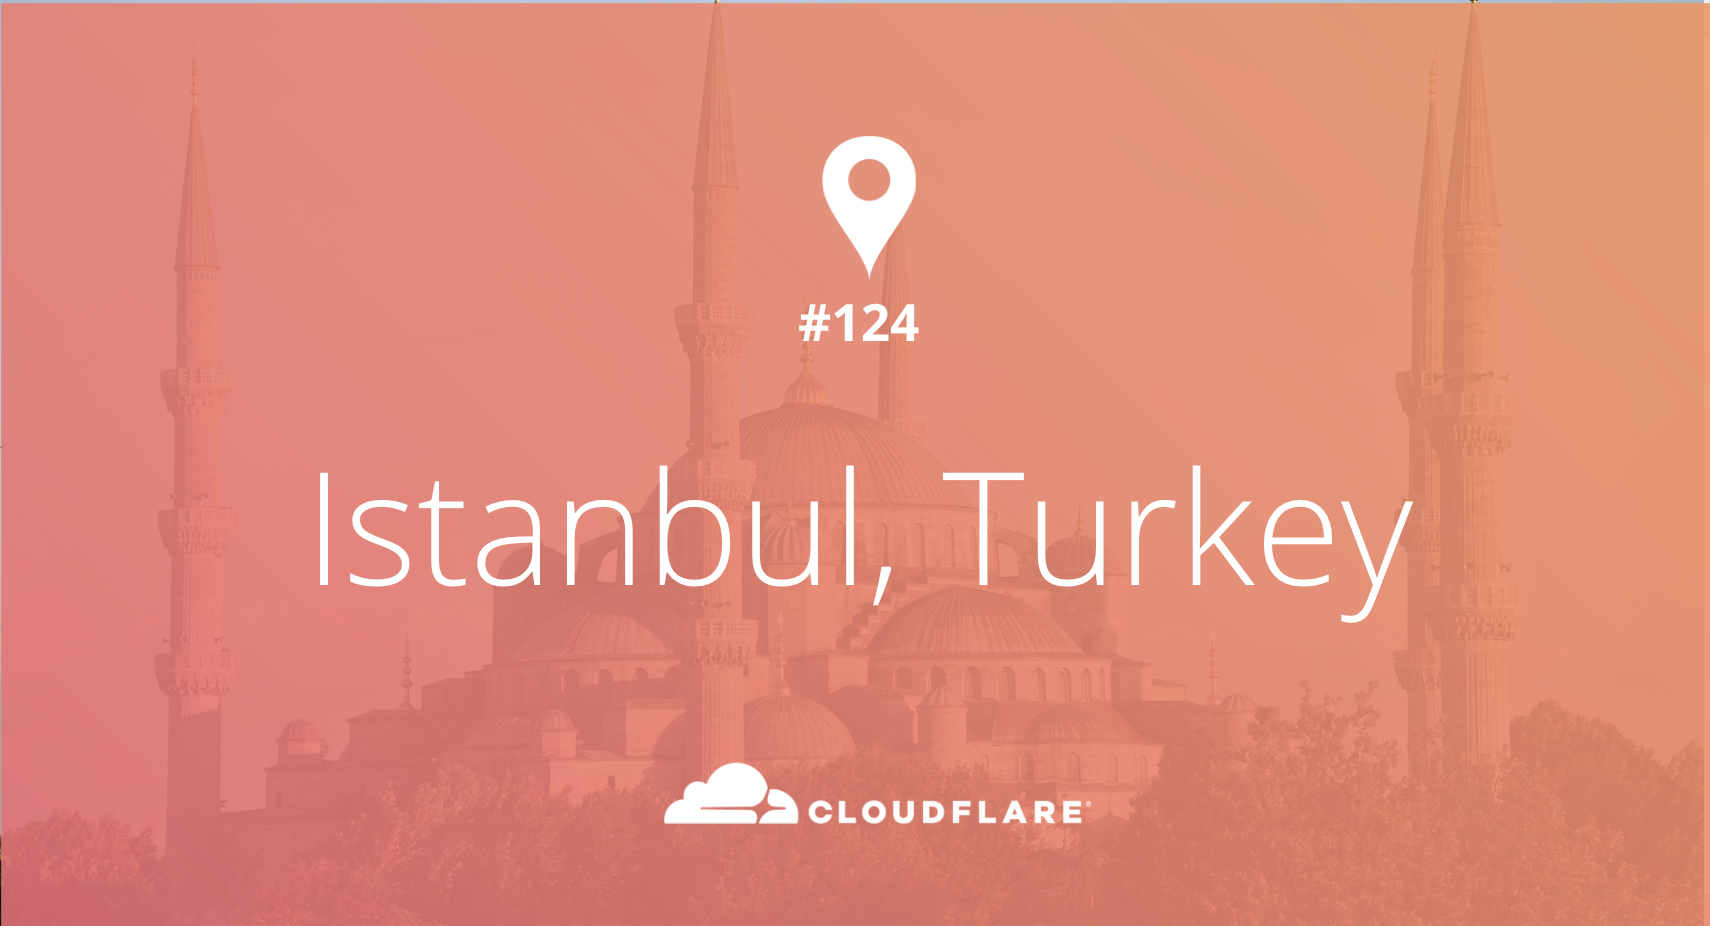 Istanbul (not Constantinople): Cloudflare's 124th Data Center